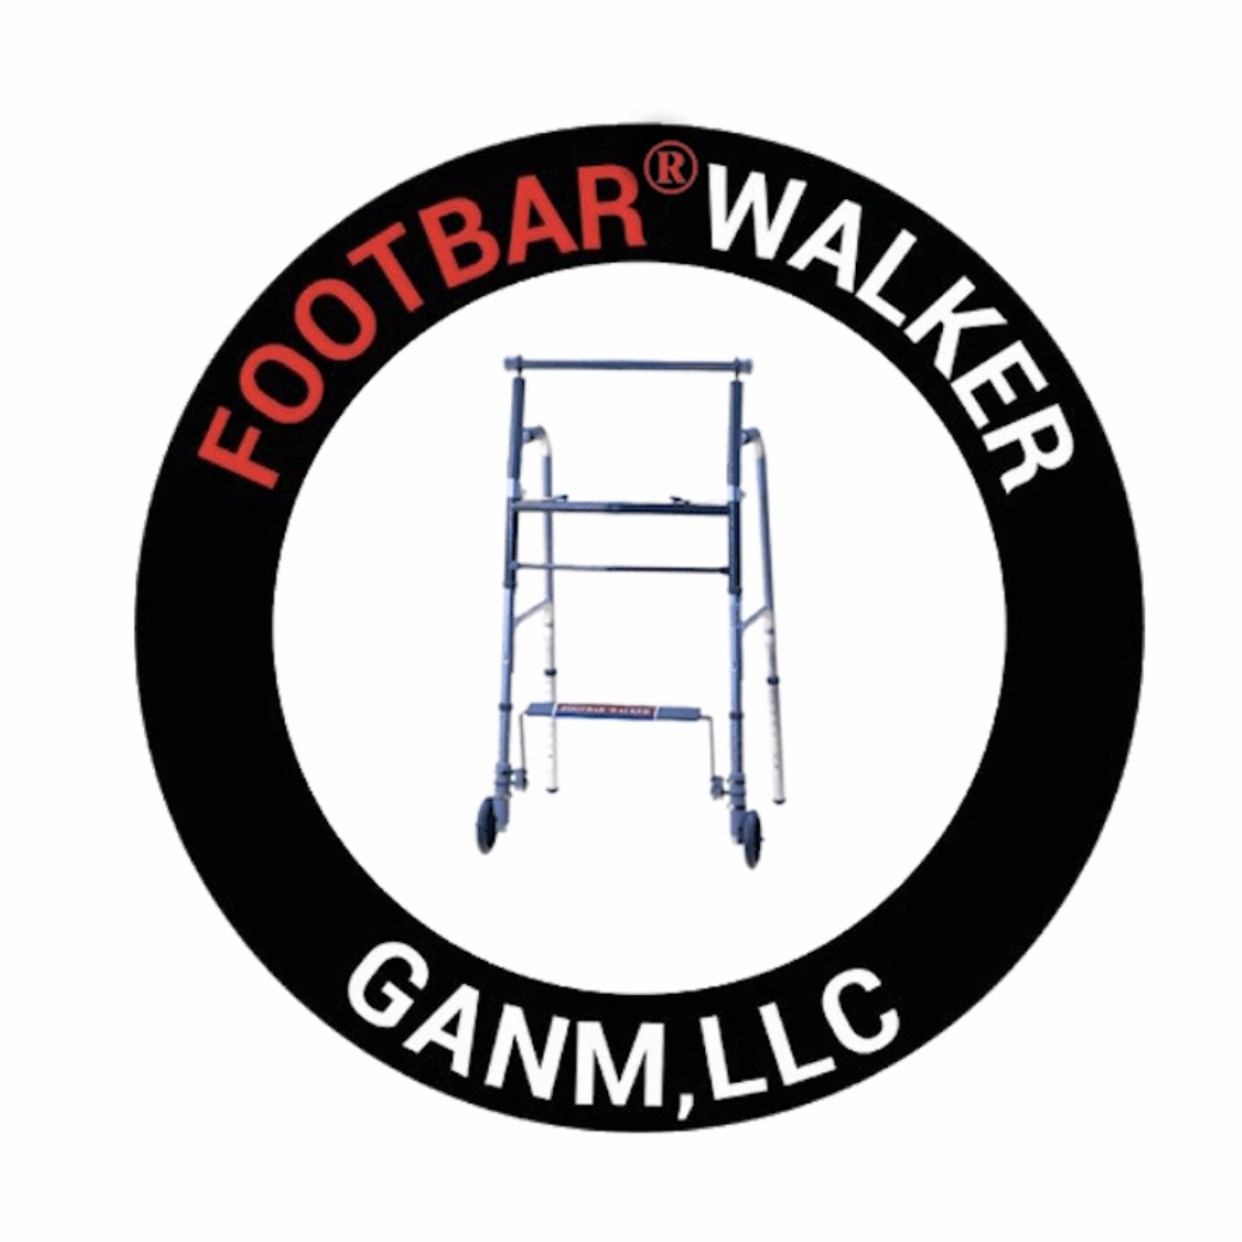 FOOTBAR® Walker